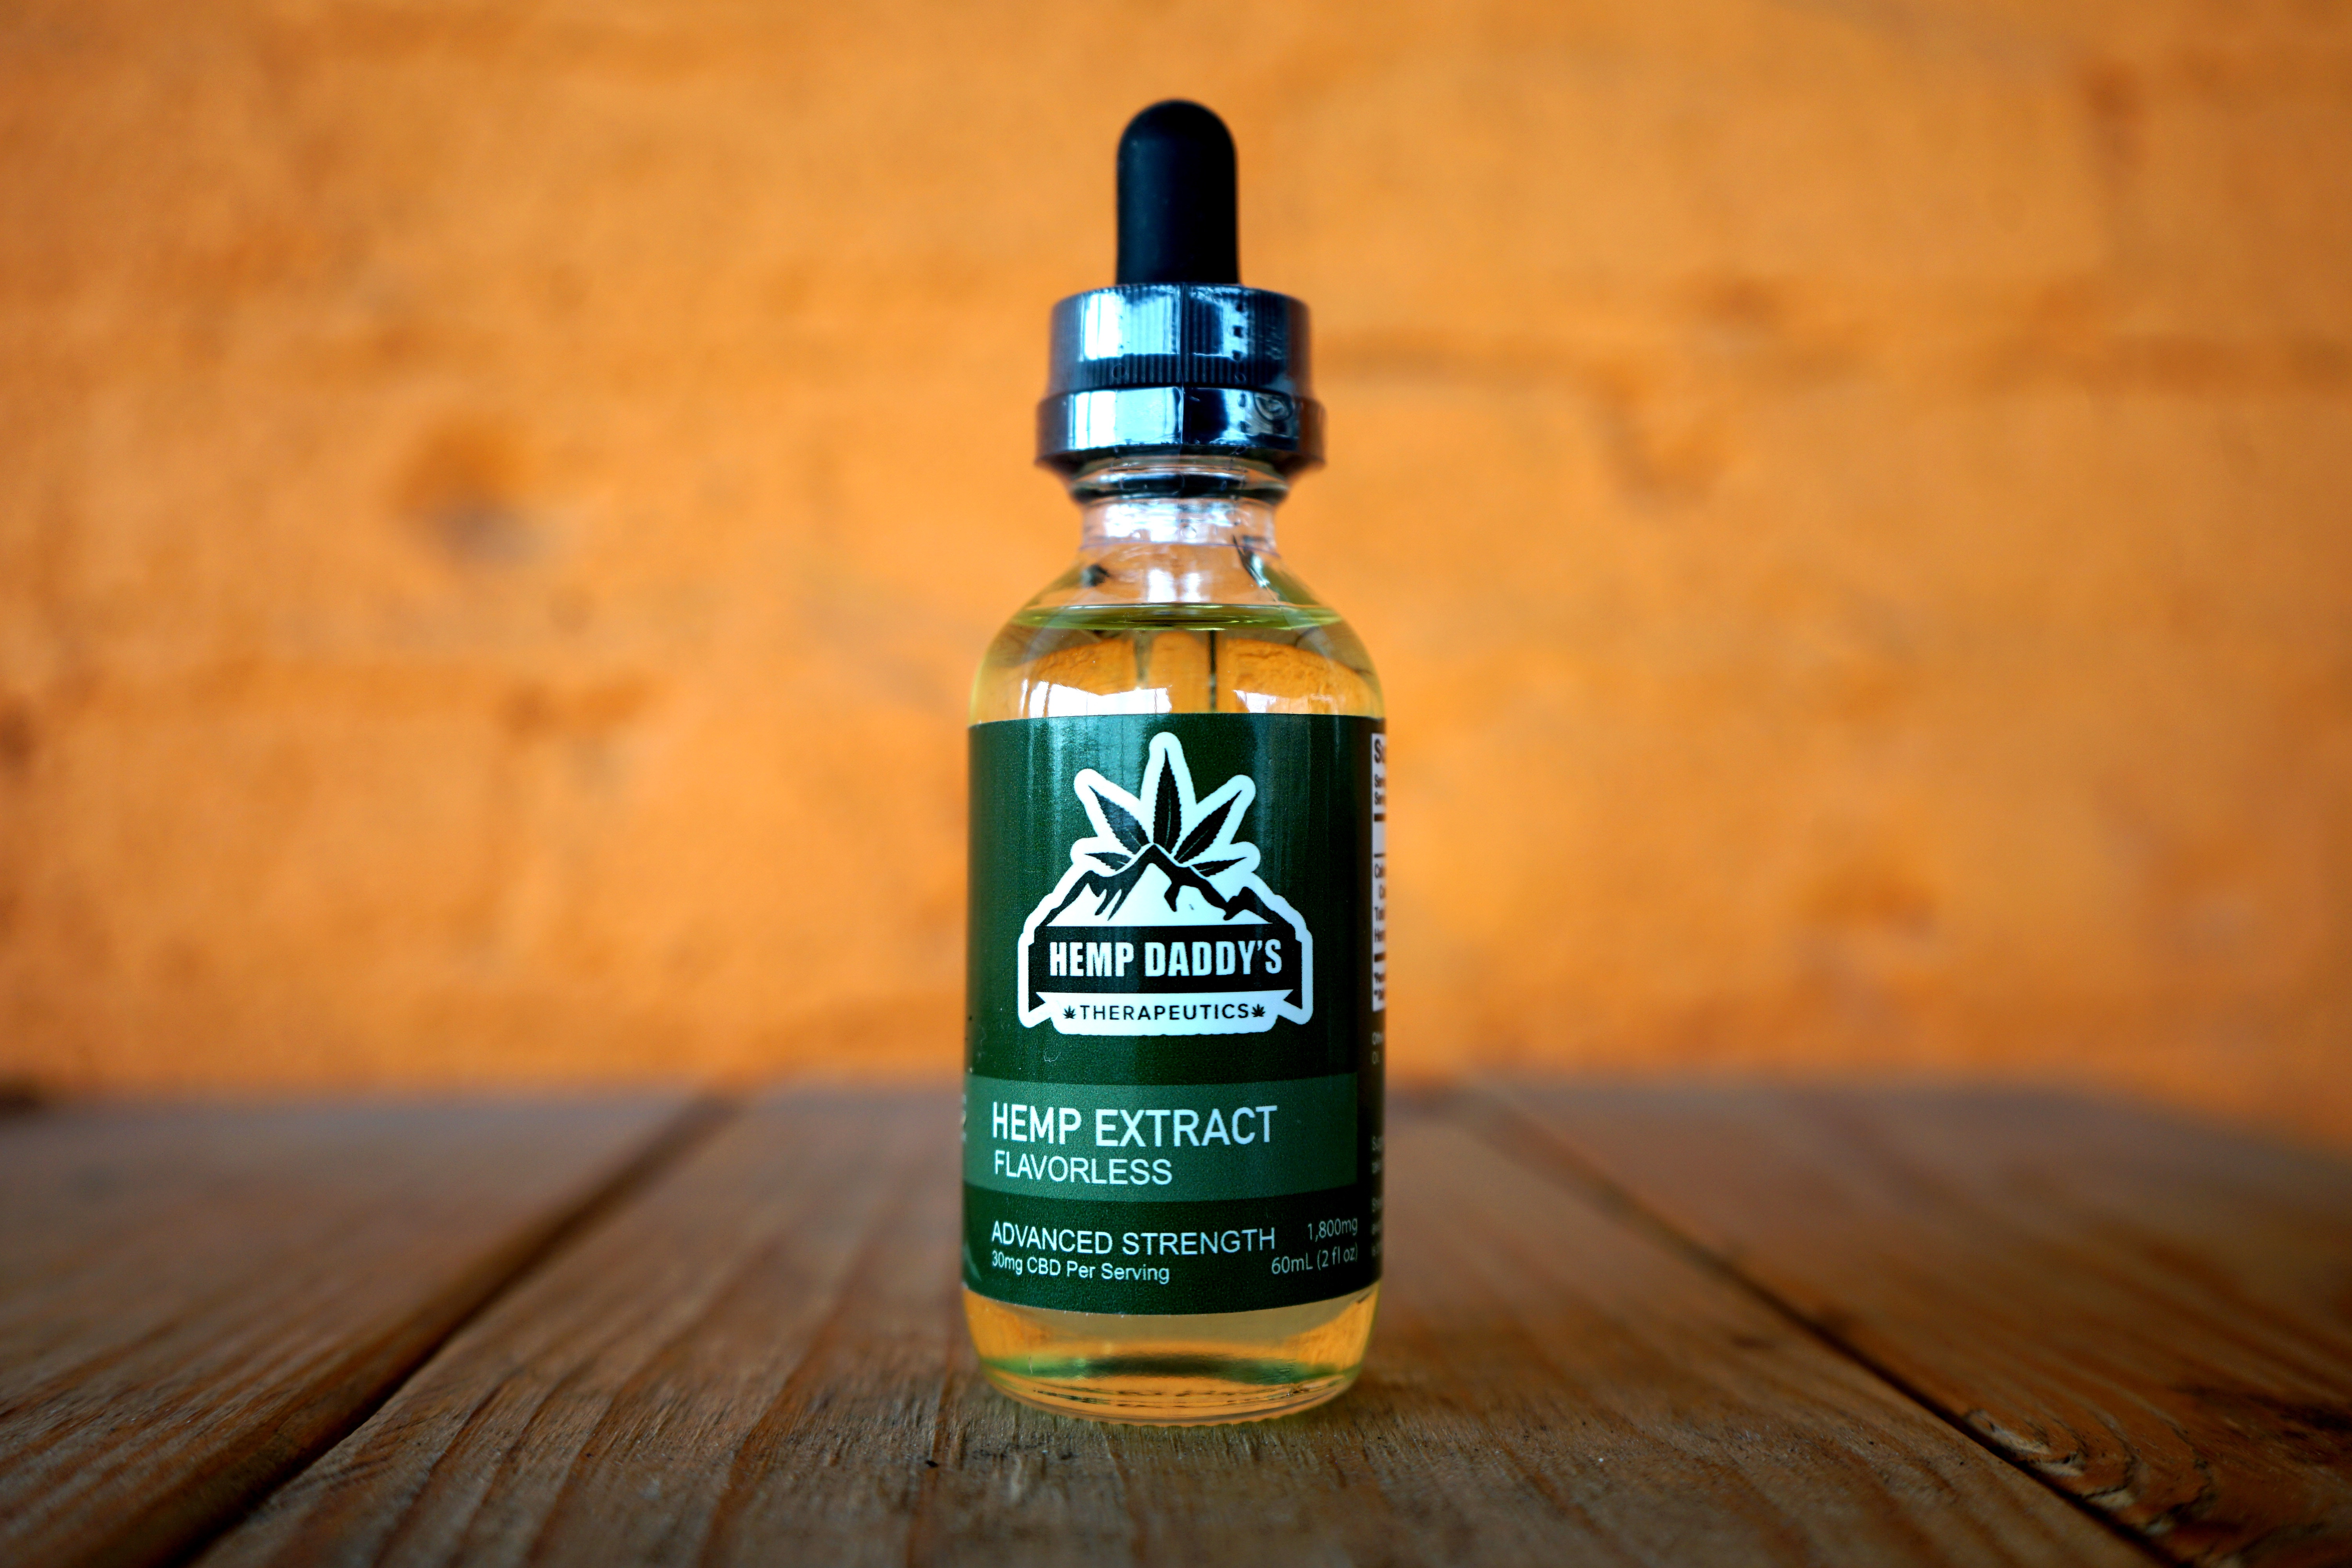 Image of CBD oil bottle on wooden table